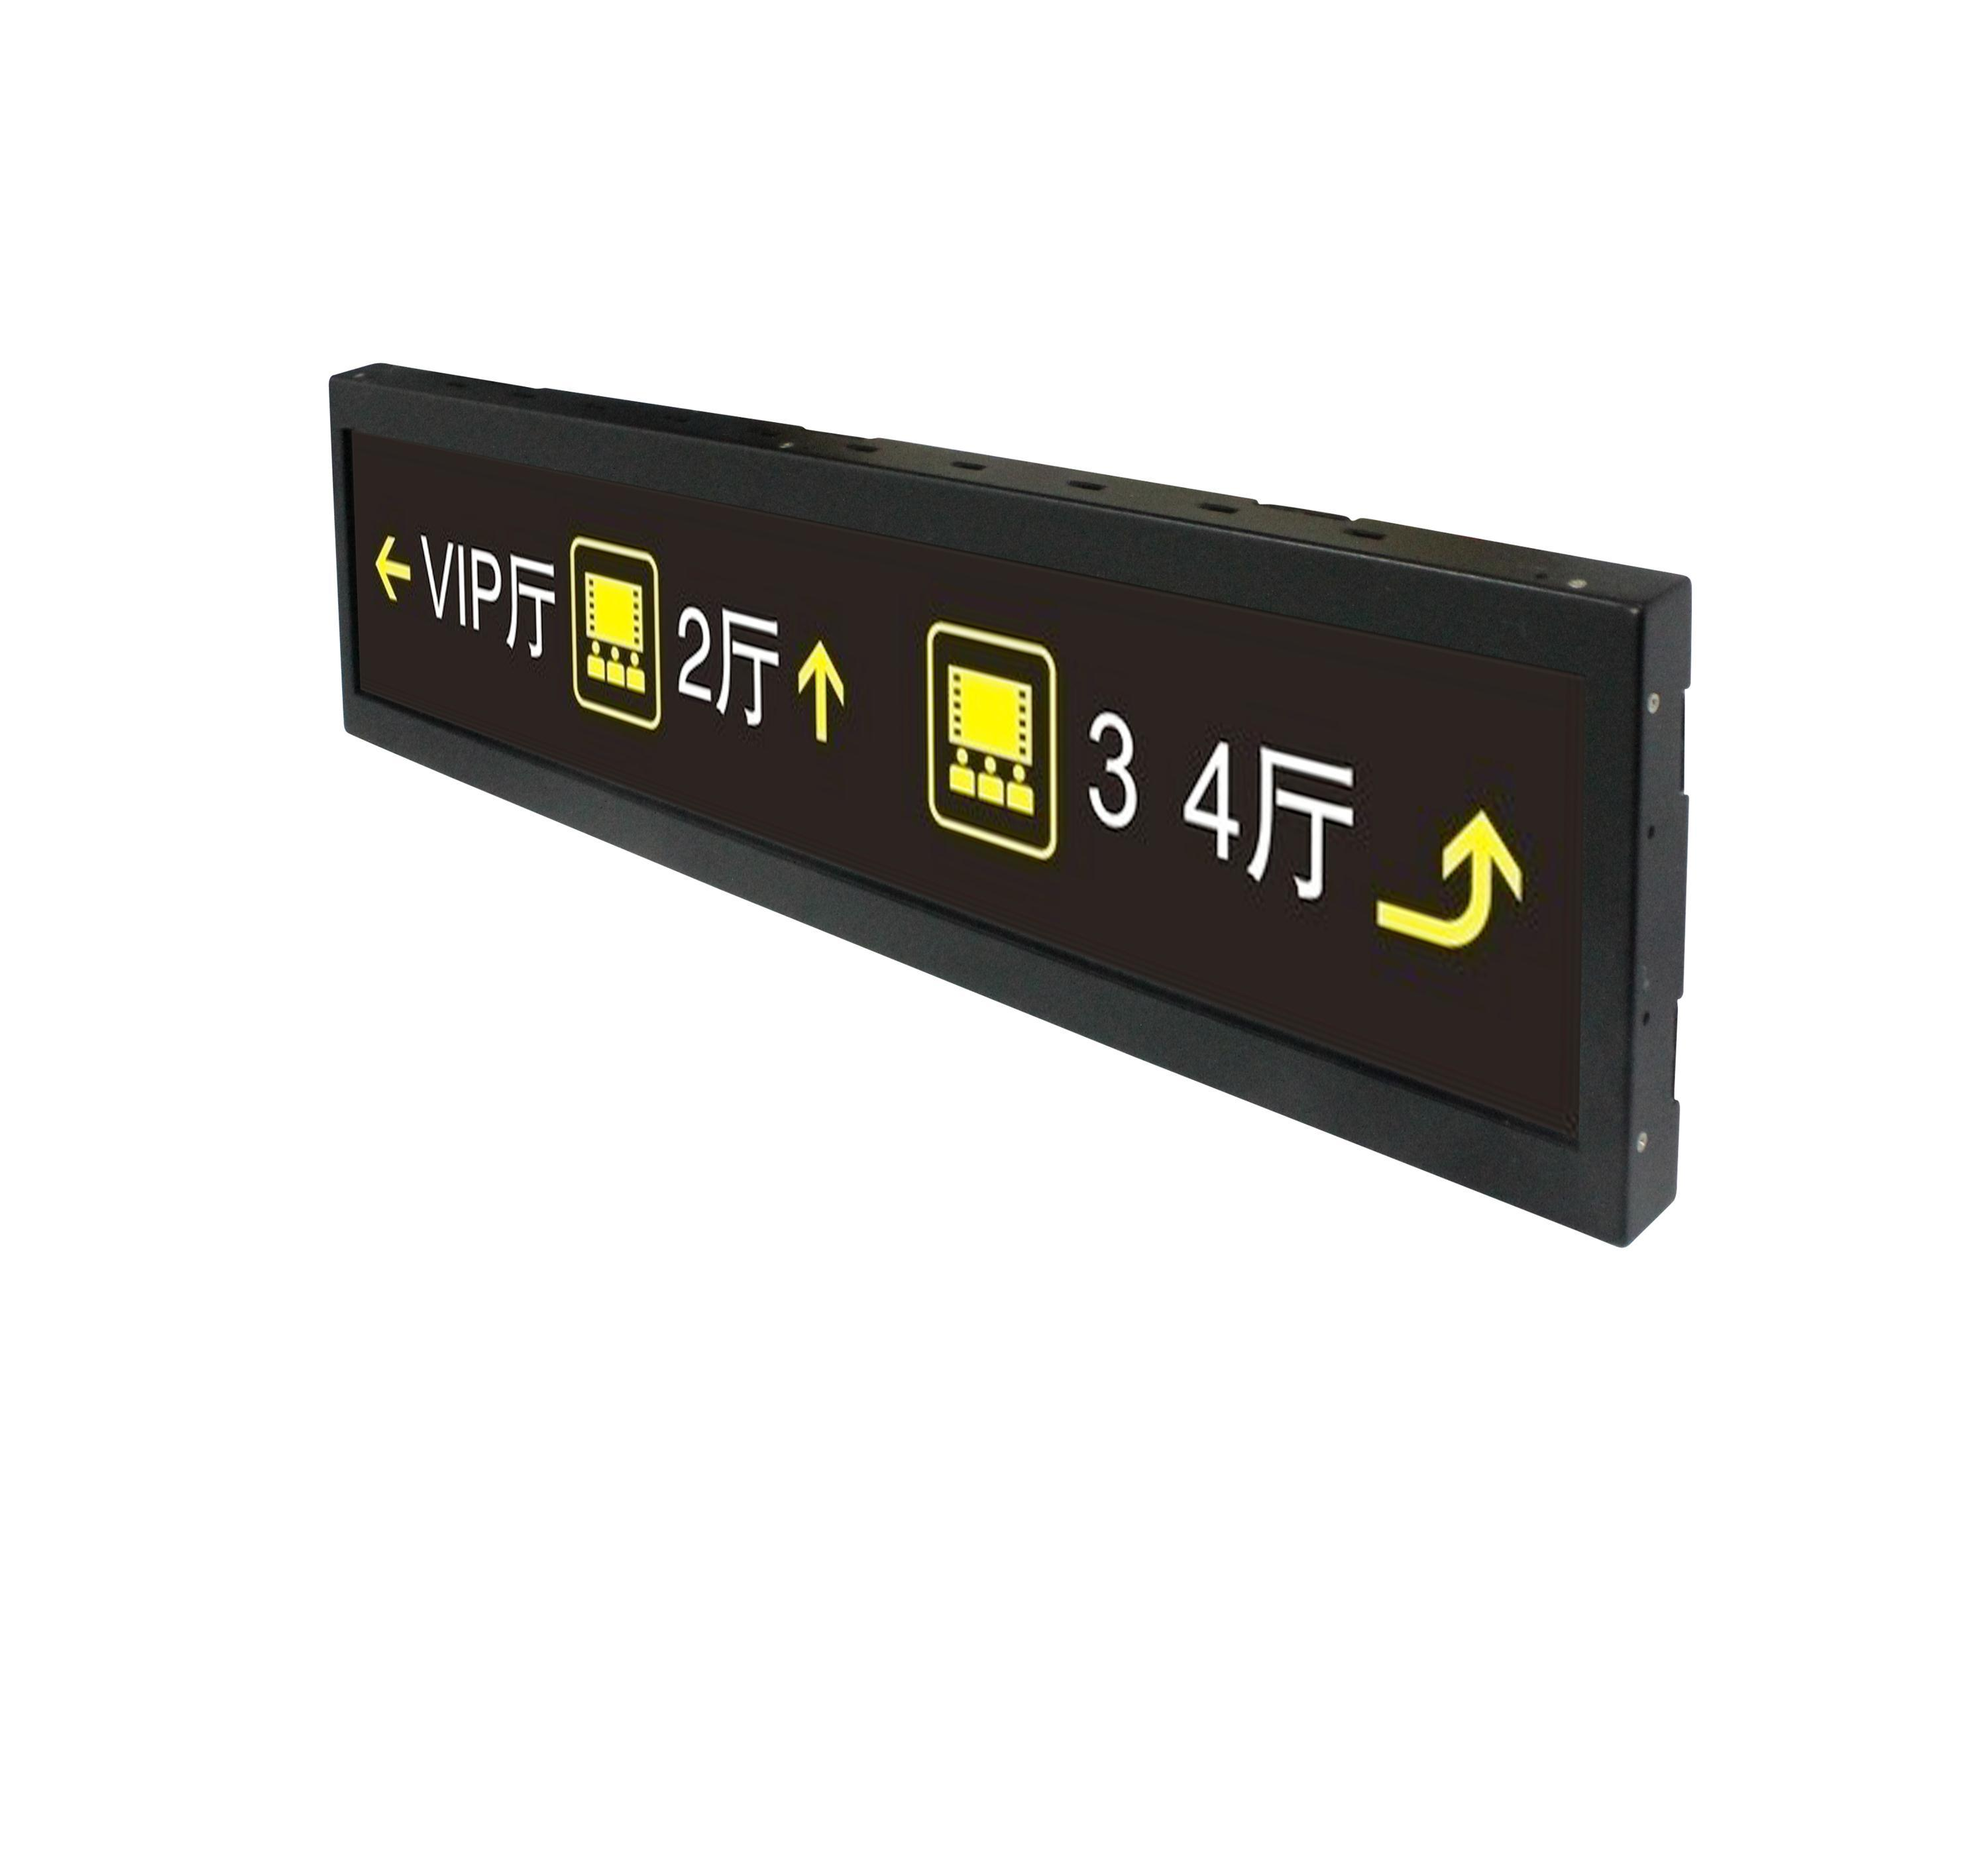 39-Inch Digital Bar LCD Information Display for Metro/Station/Mall, Wall Mount